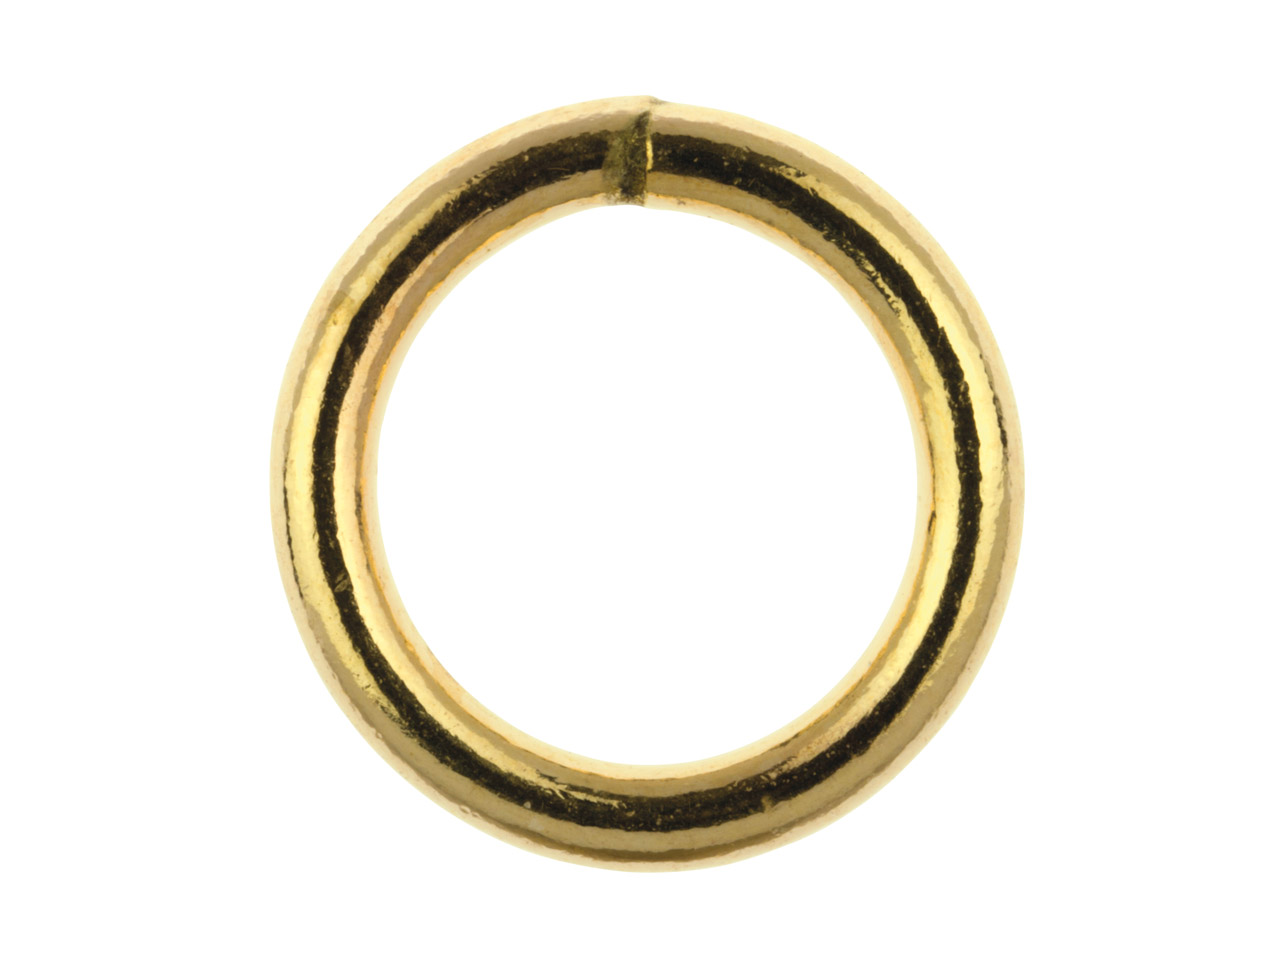 14ct Gold Filled Closed Jump Ring  7mm Pack of 5